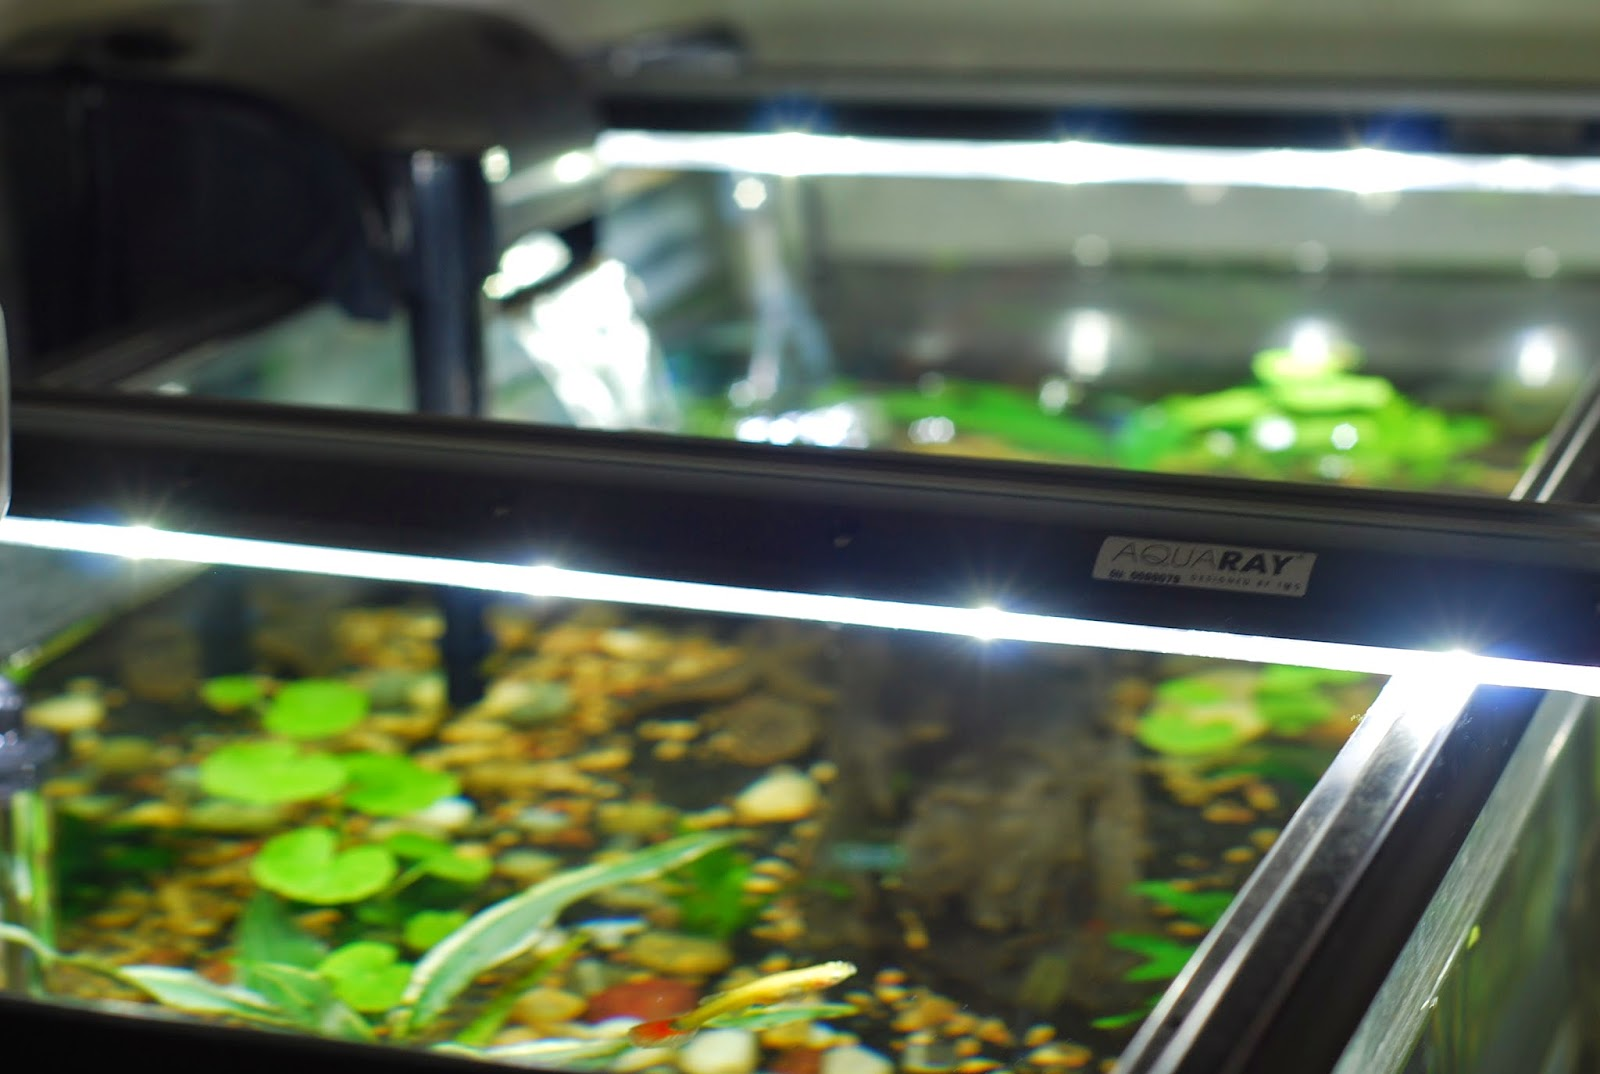 Aquarium lighting for plants - Lighting For A Freshwater Tank Is Pretty Straight Forward But There Are Some Aquarium Keepers That Get Confused As To Which Light Is The Best For Plant